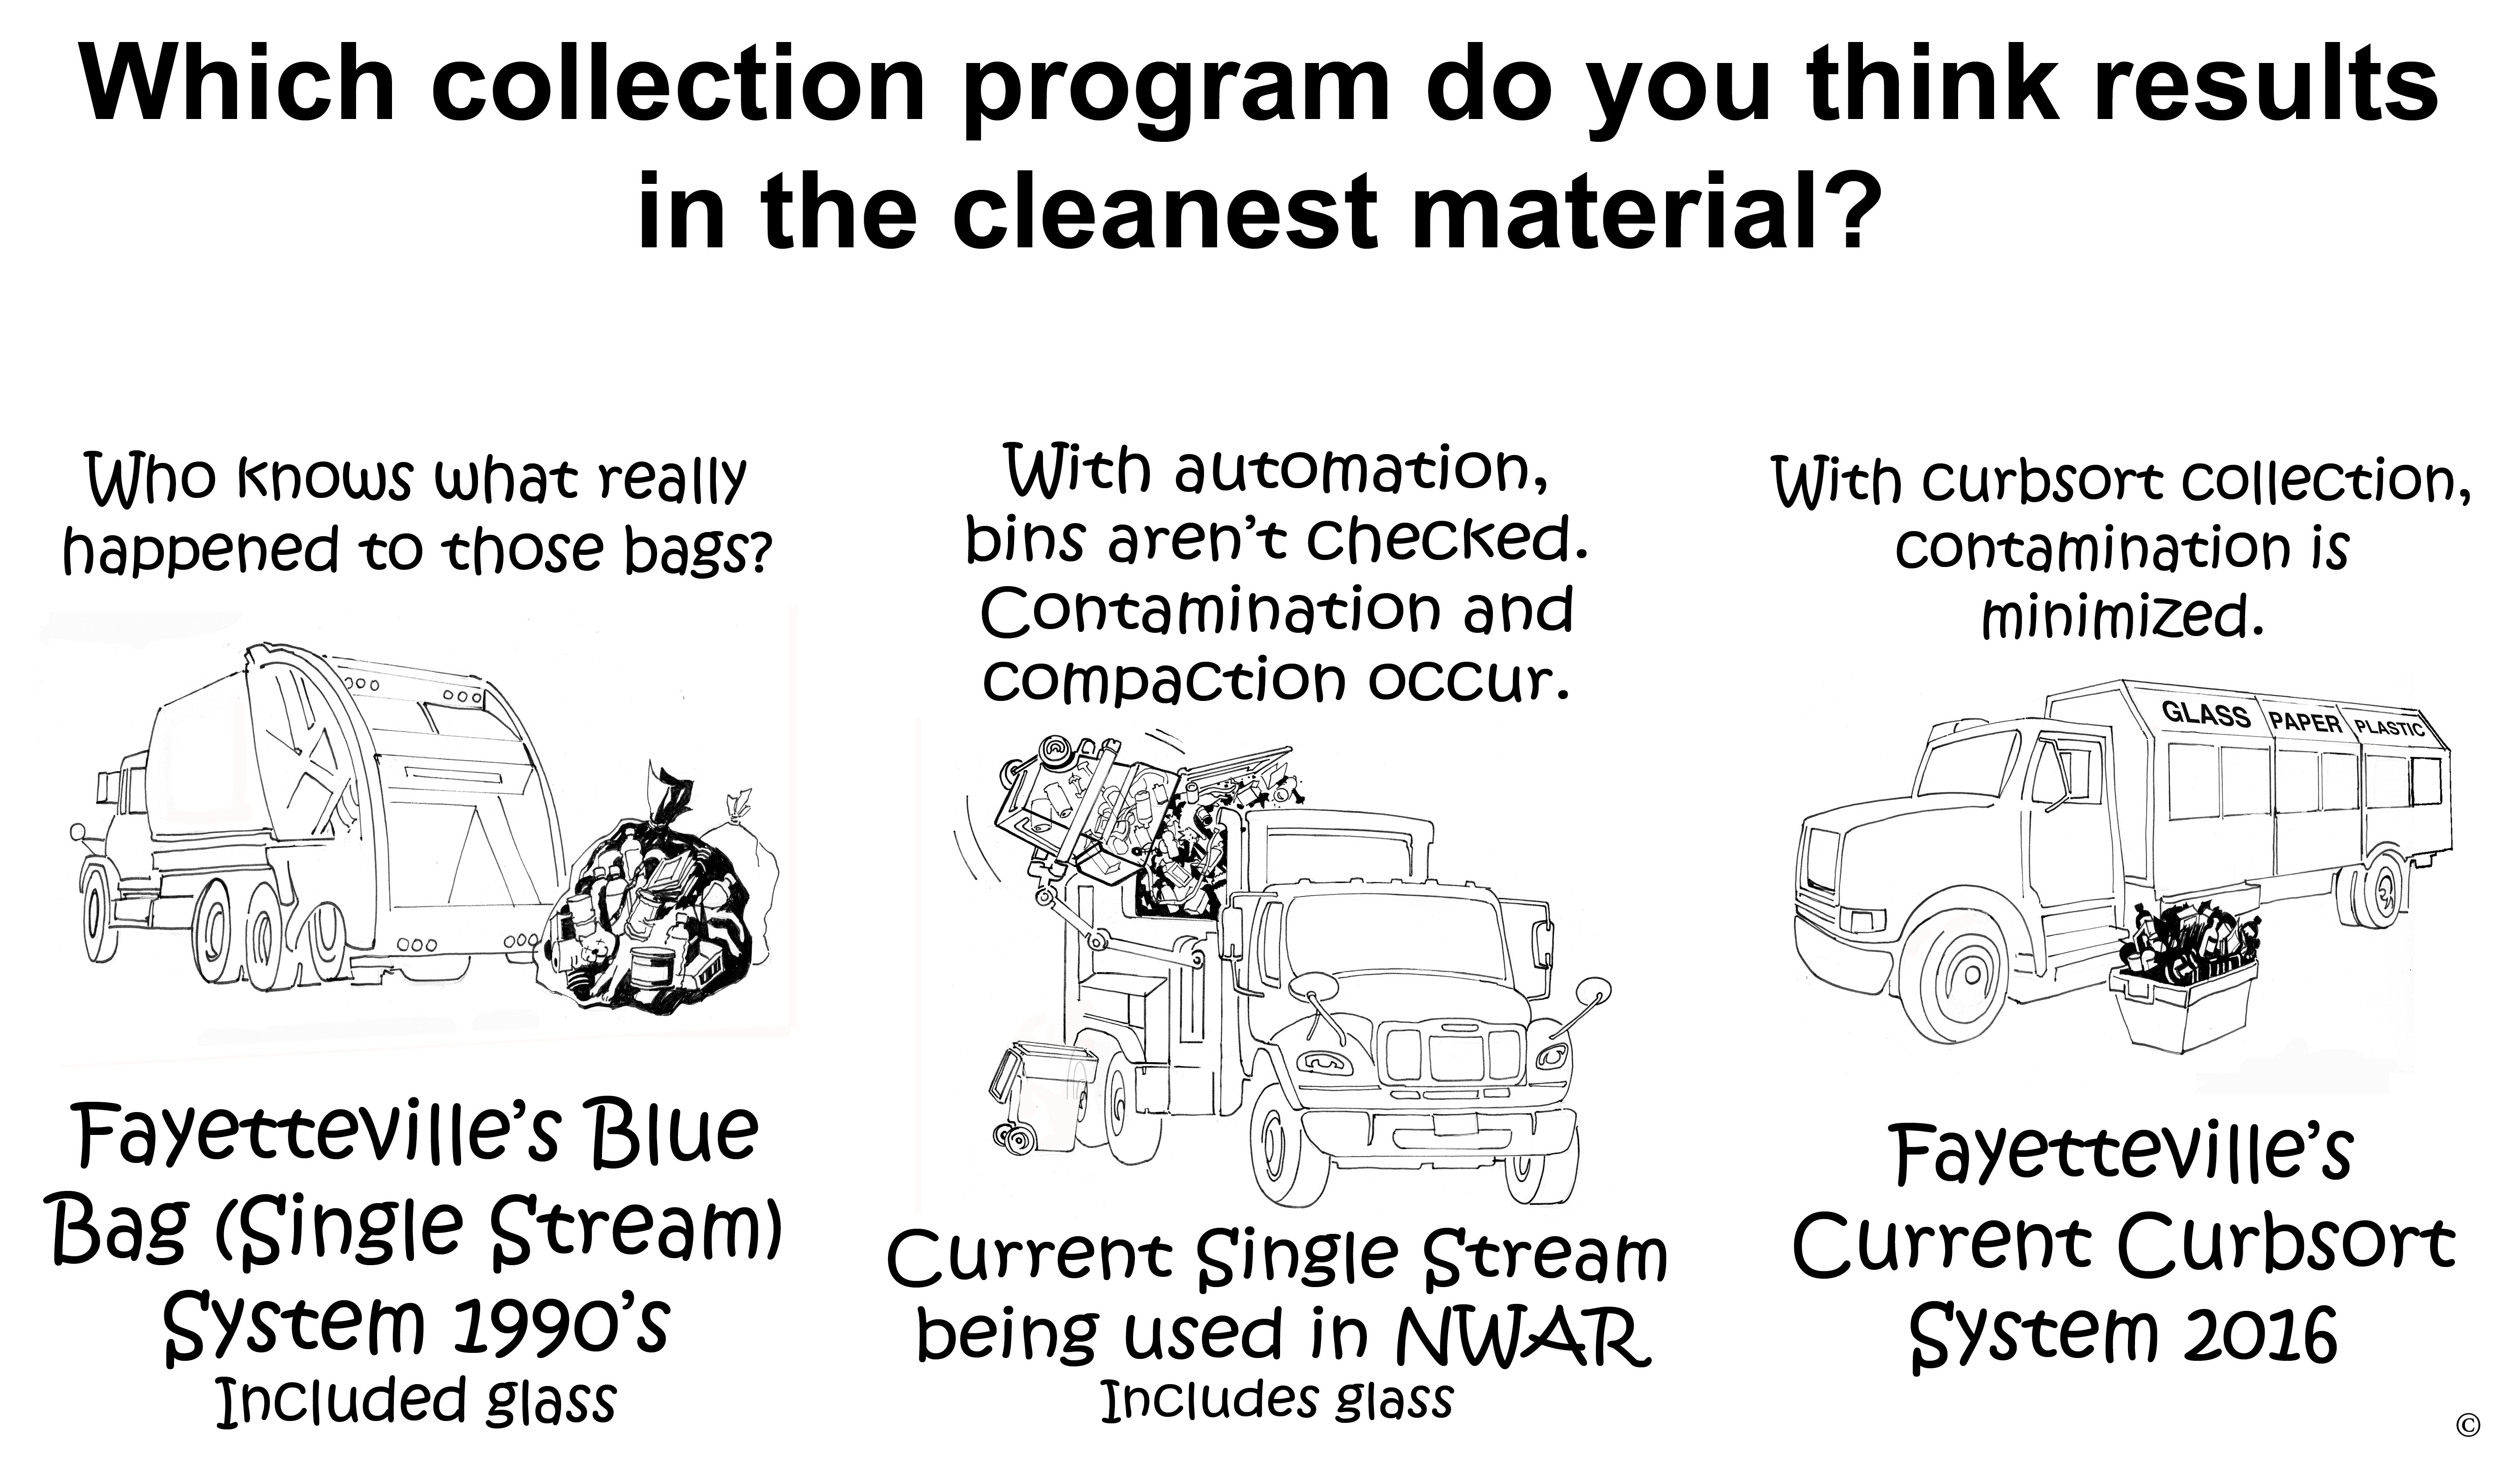 Which Collection Program Results in the Cleanest Material?